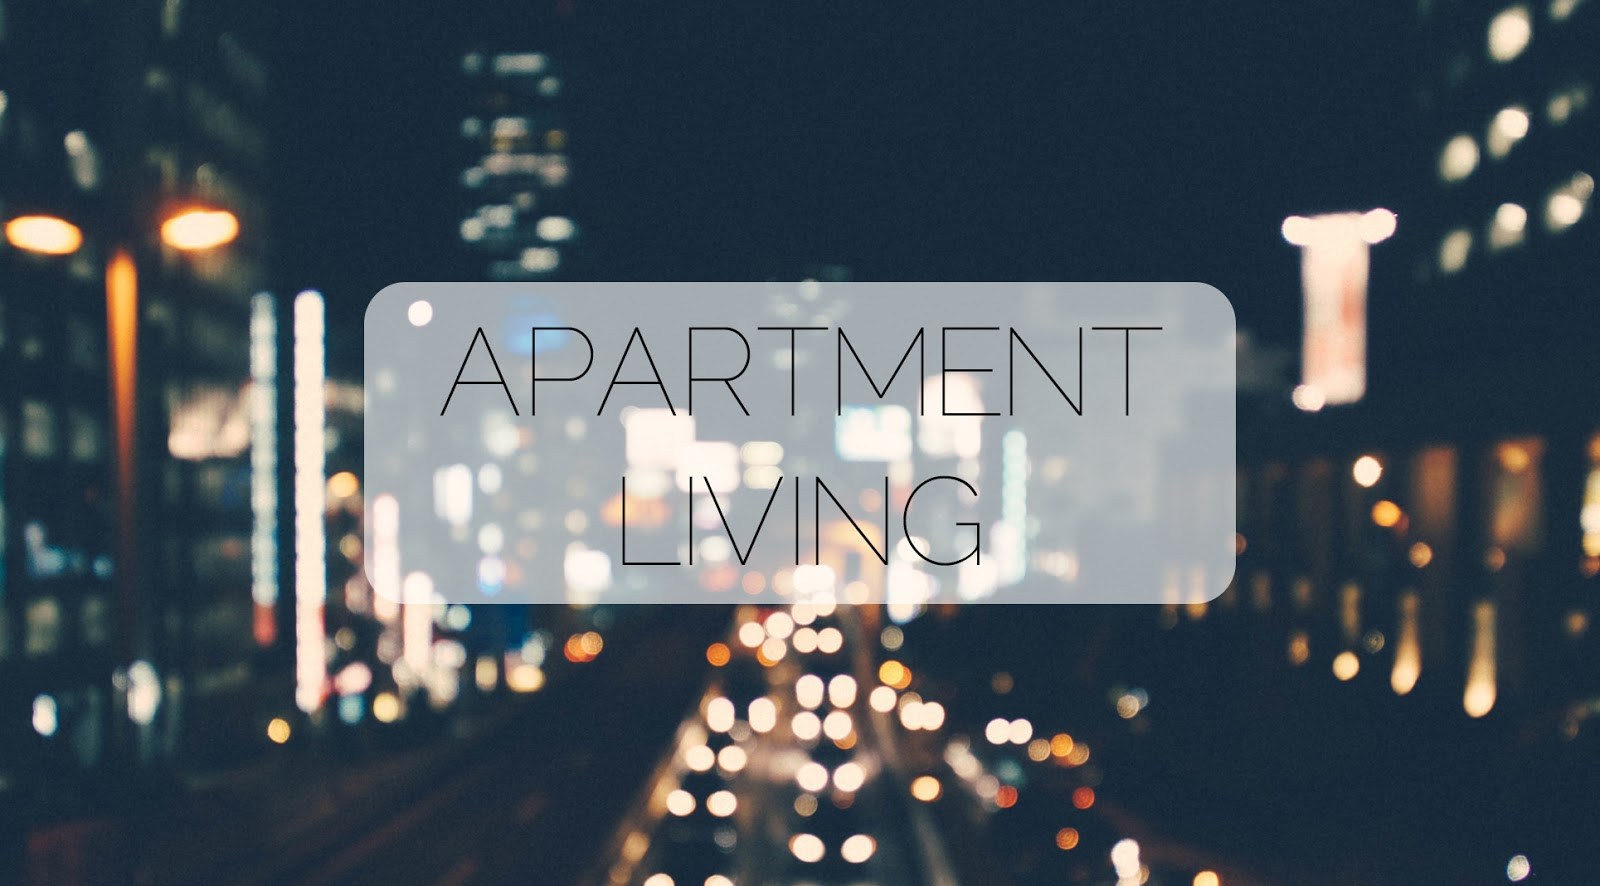 life living in an apartment or One of the first major challenges that many foreigners face when moving to japan is finding a place to liverenting an apartment in tokyo is a complicated process filled with all sorts of regulations and procedures, strange acronyms, and more fees than you can possibly imagine.